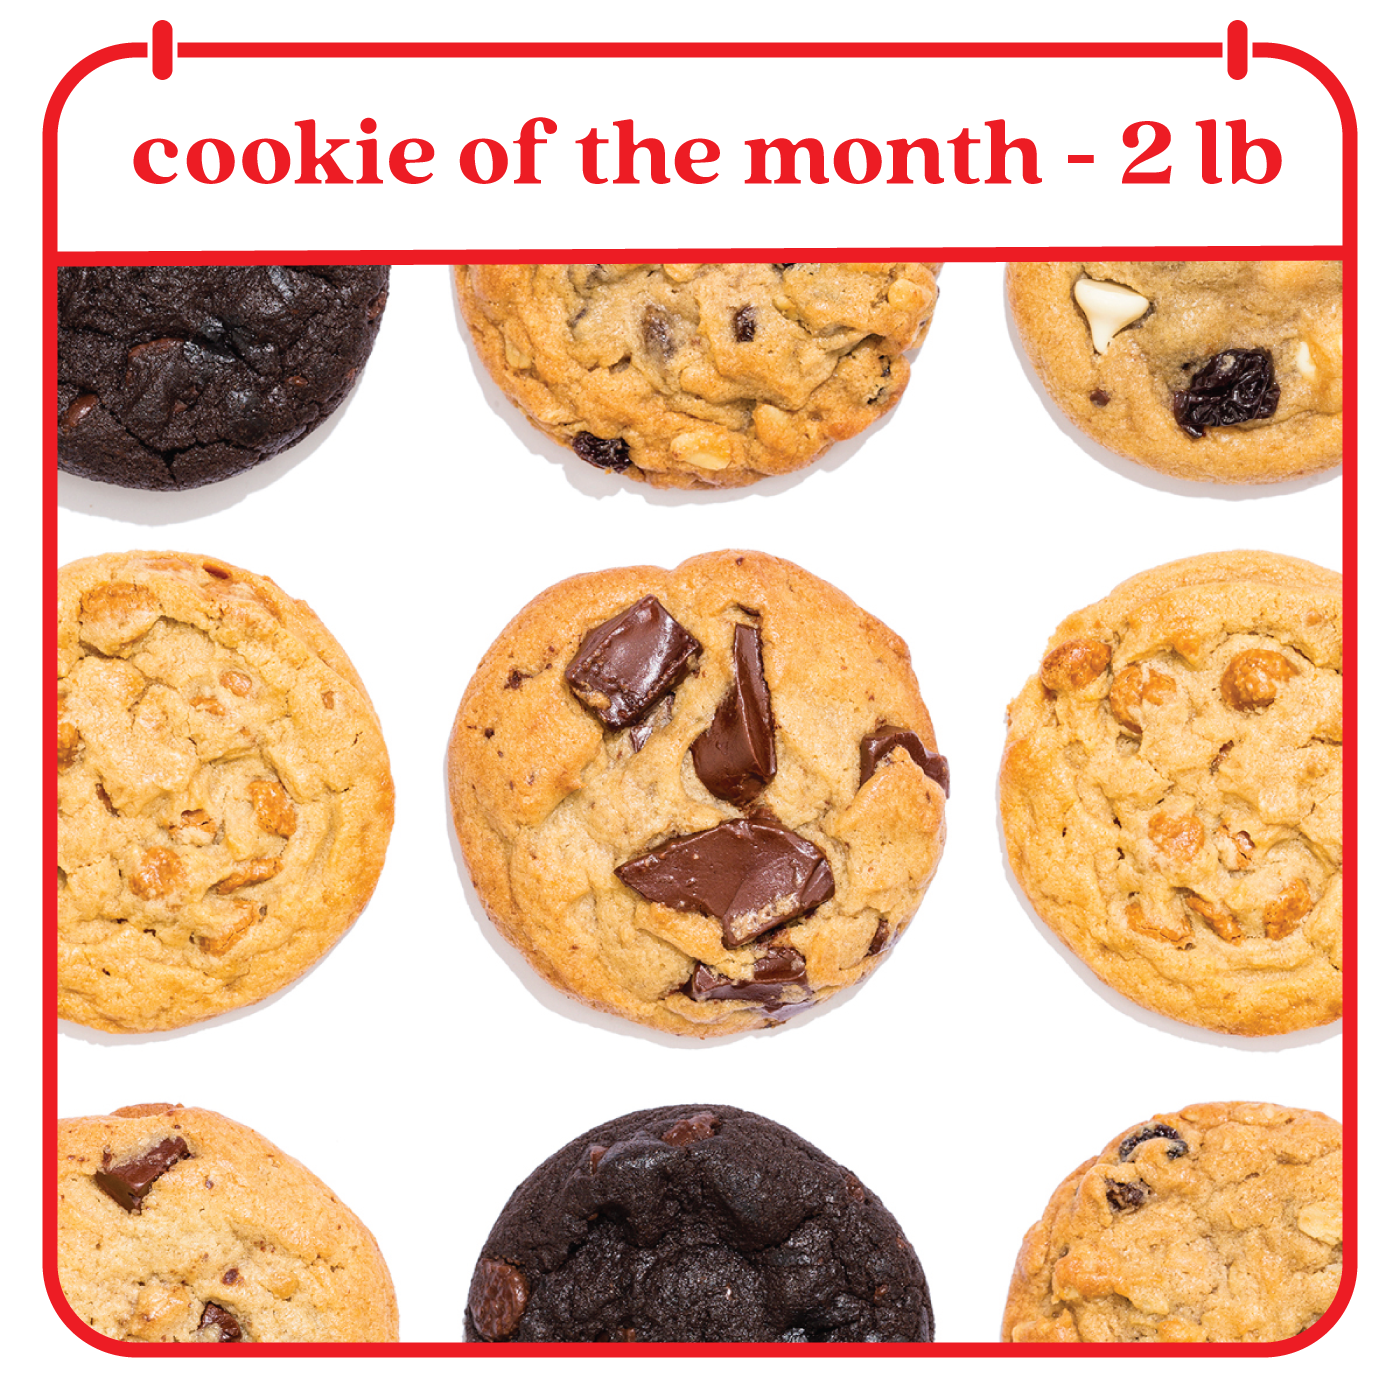 Cookie of the Month Club - Fresh Baked Cookies Tin - size: 2lb Signature Cookie Tin